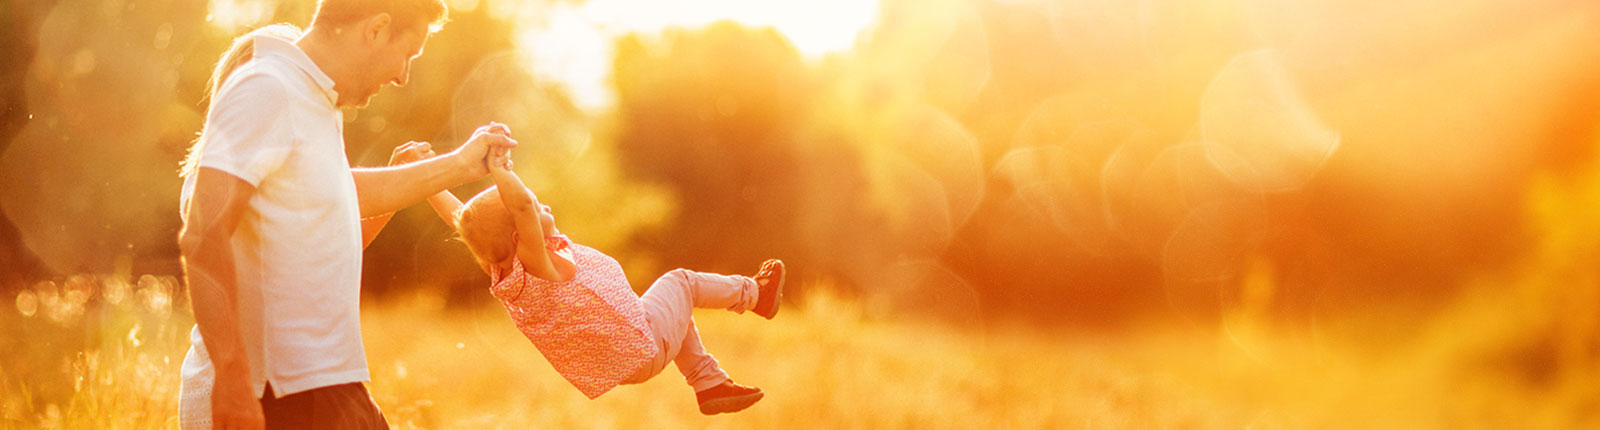 Family swinging little girl in air in sunny golden field